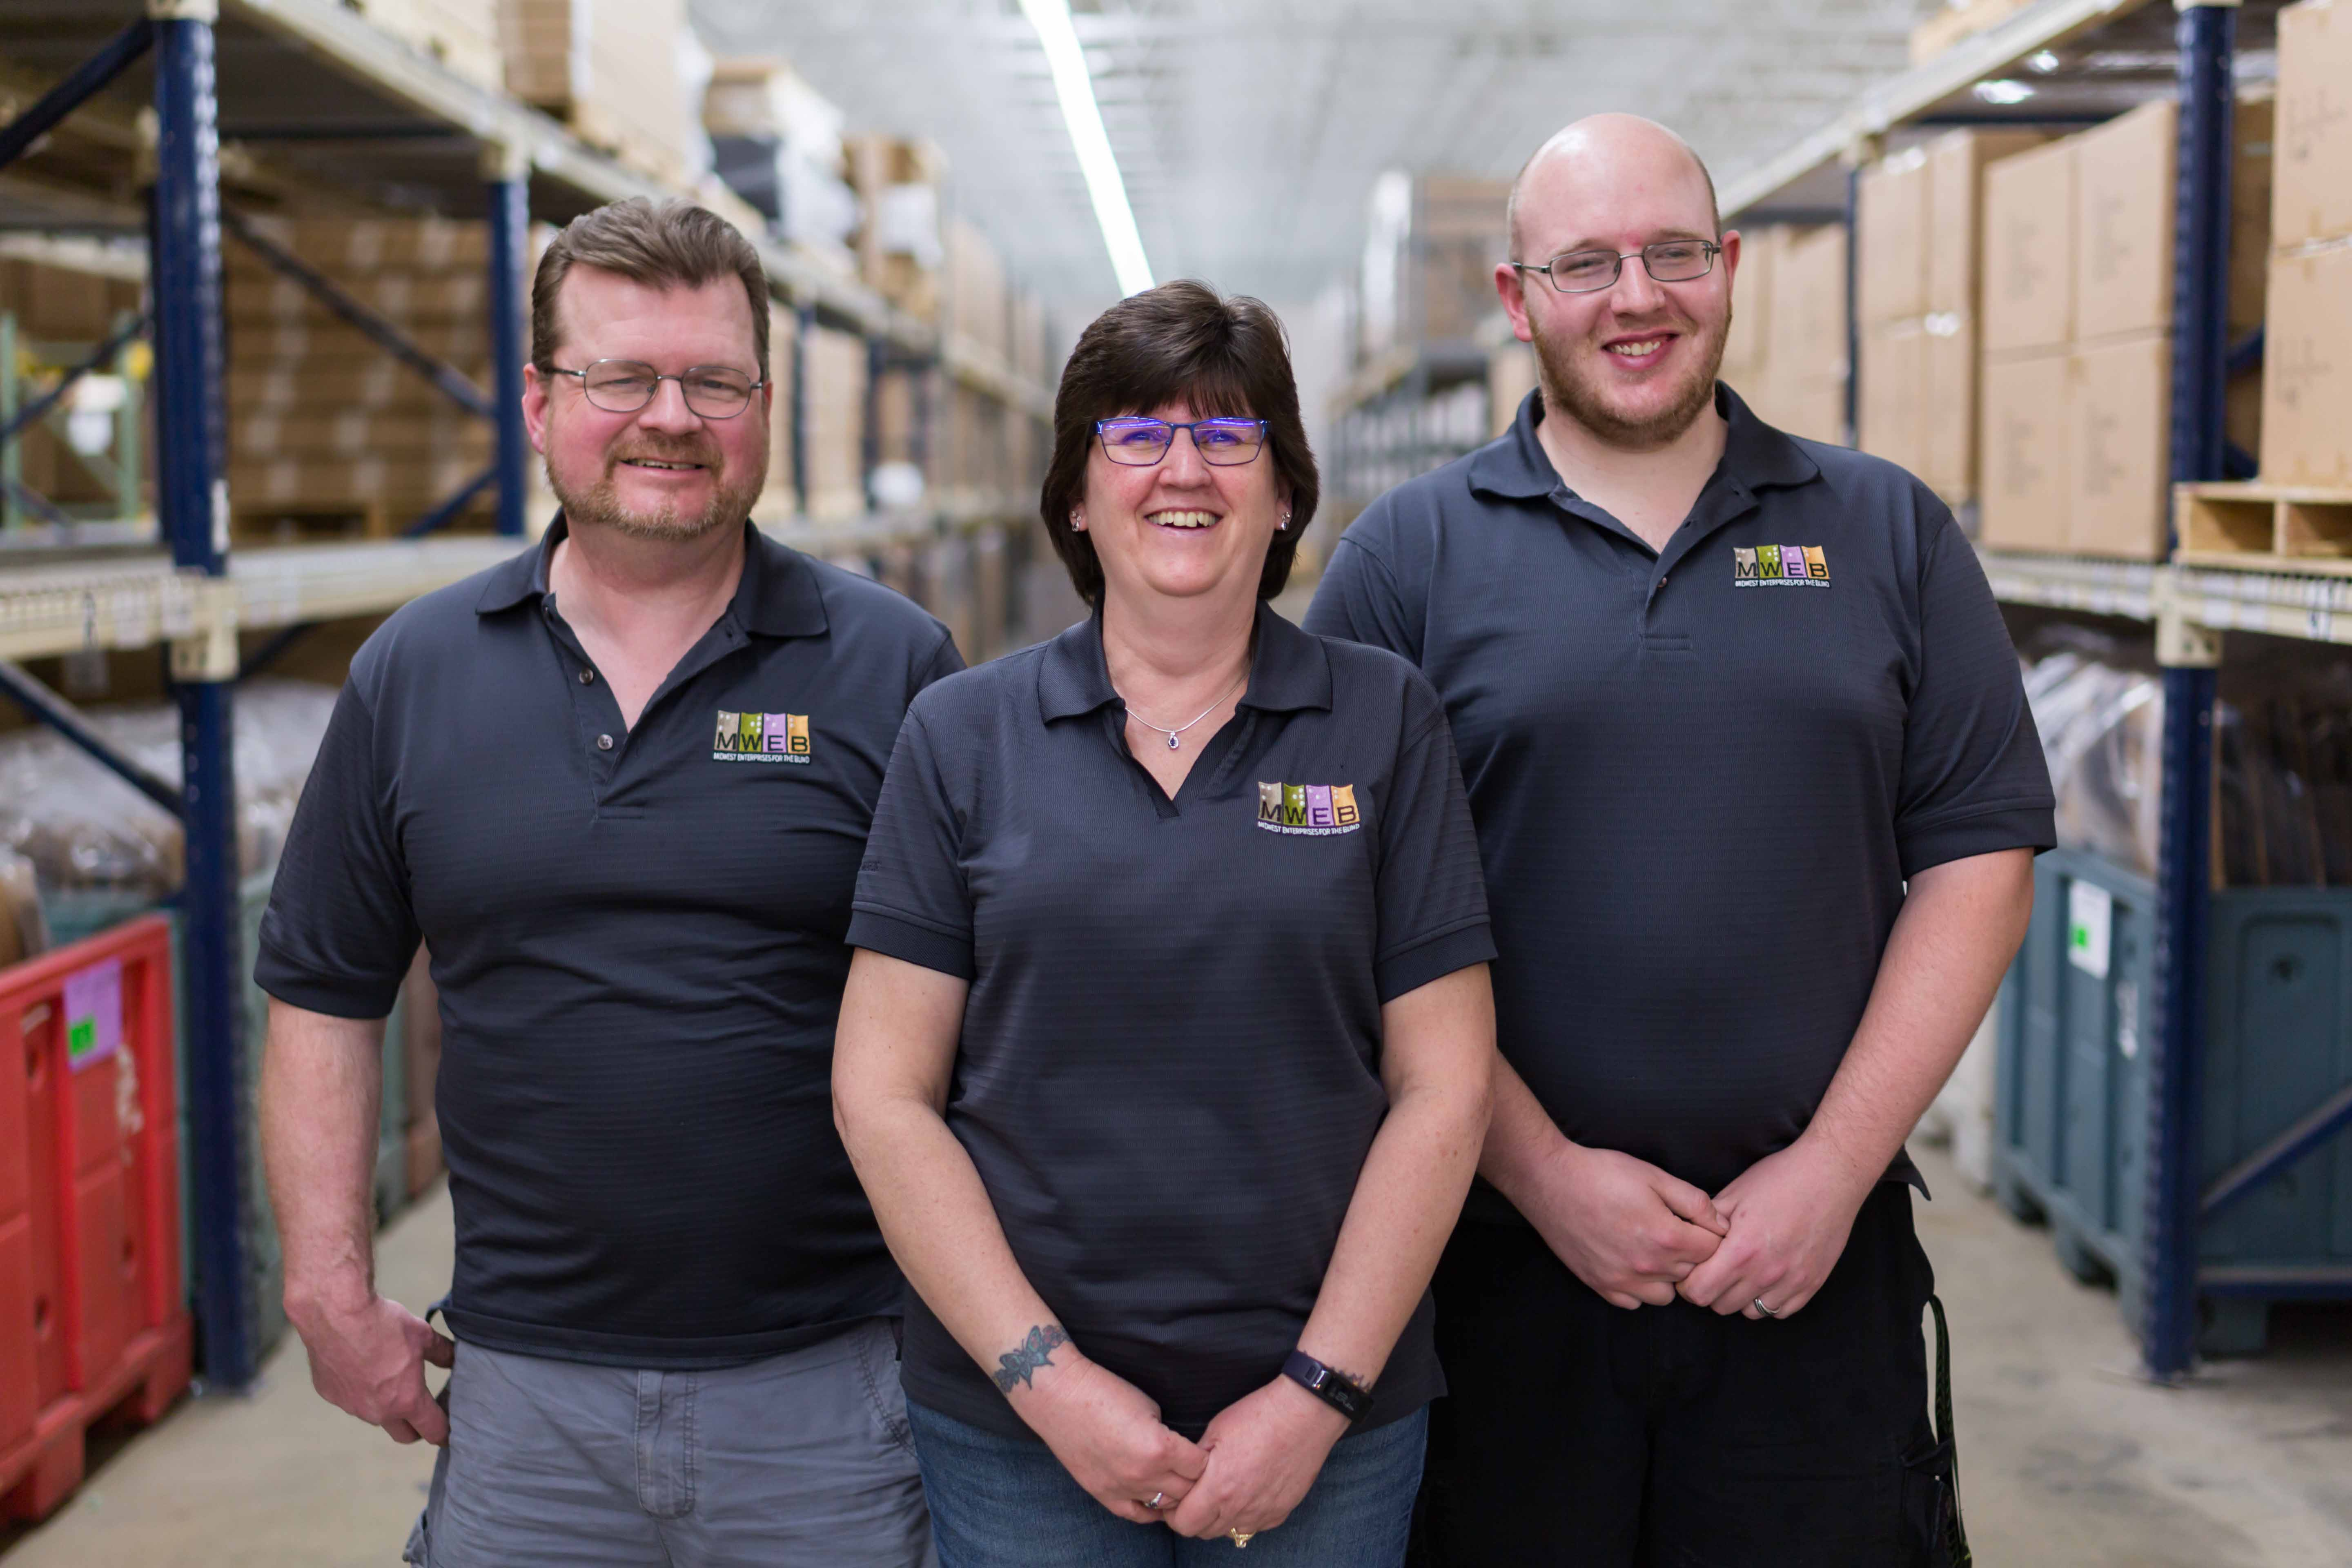 Mark, Jackie, R.J. - Warehouse and Shipping Team